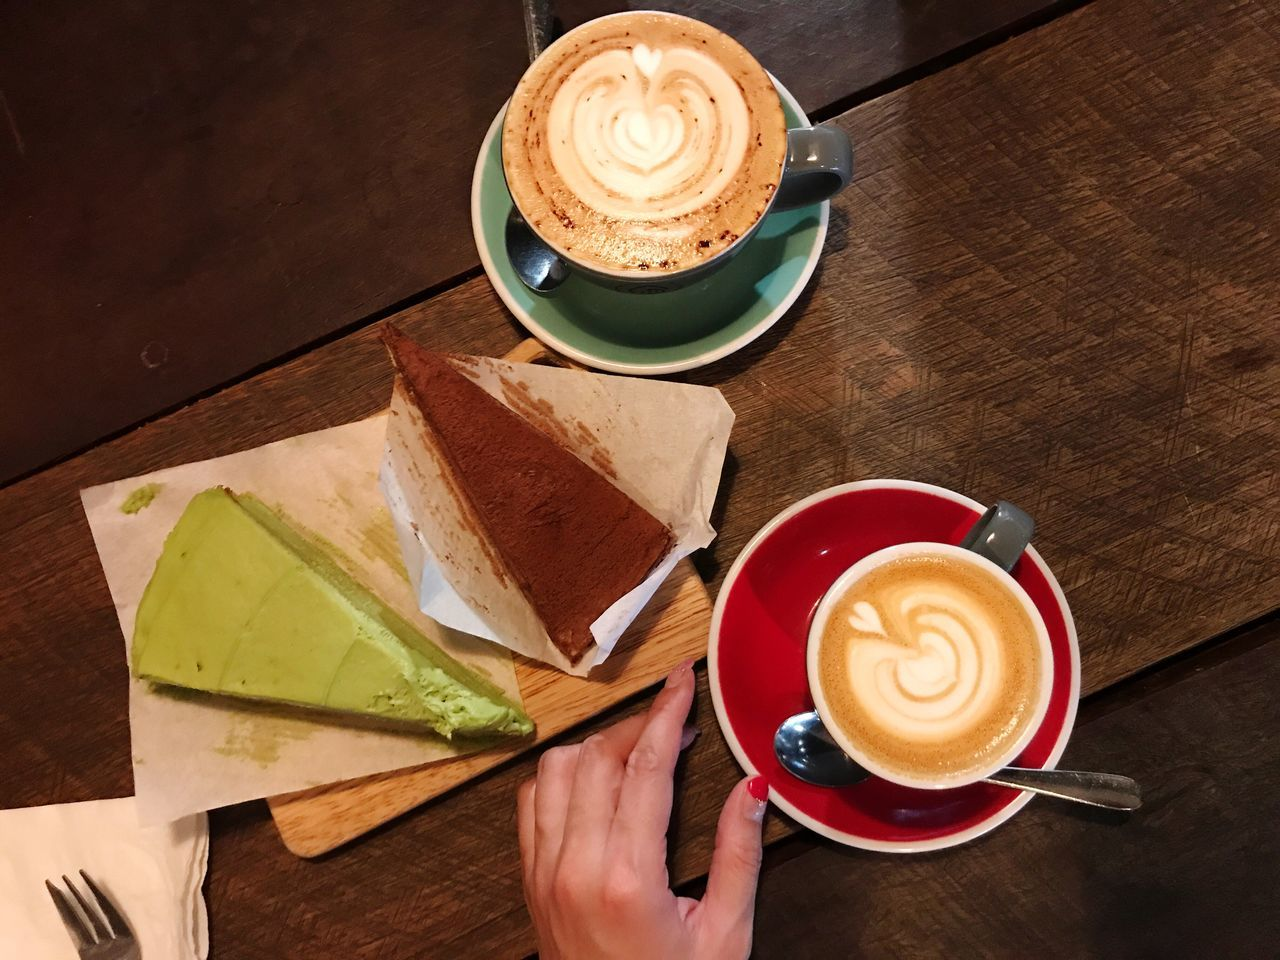 Crepe Cake & Coffee Time In My Mouf 😋